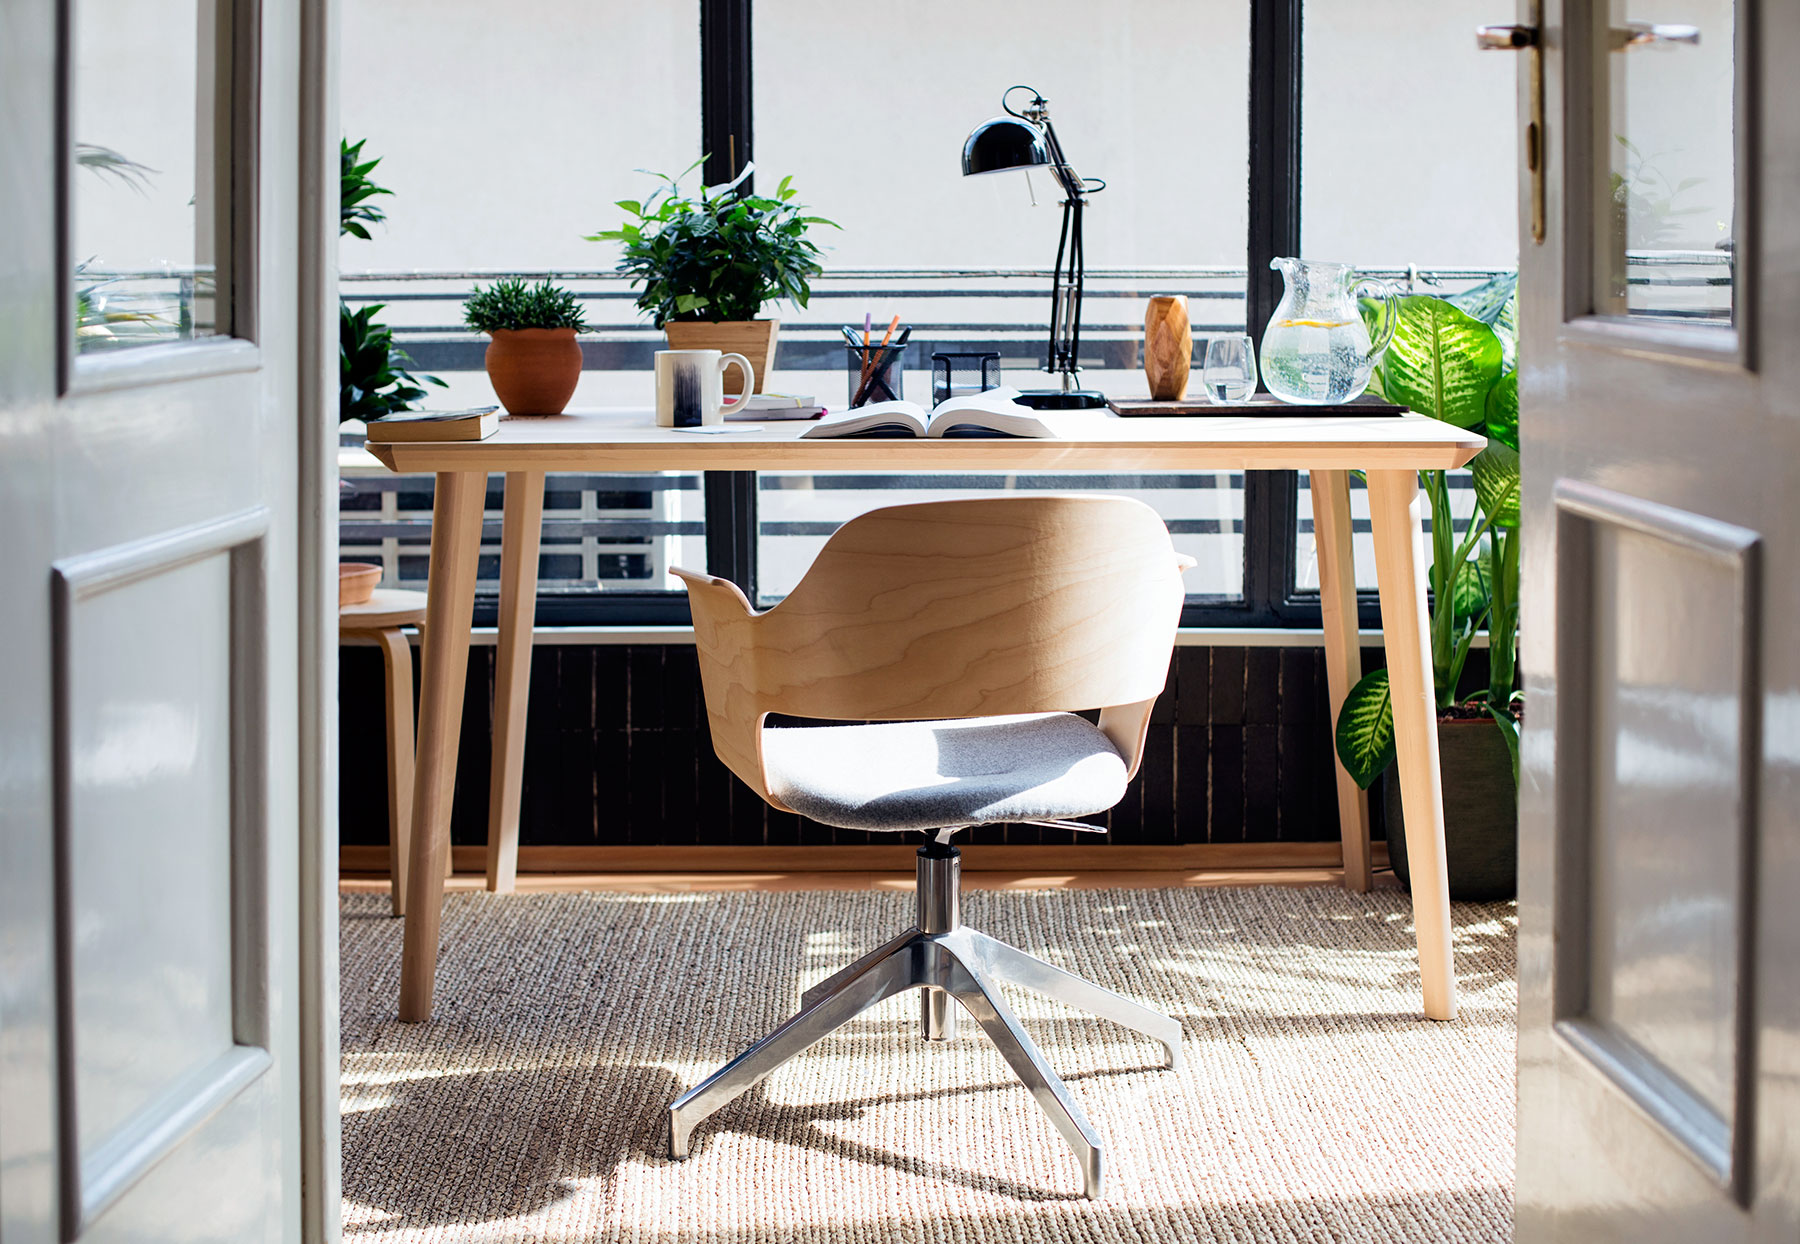 home office ideas that will make you want work all day real parquet accent table target simple concrete patio cordless battery lamp red umbrella hand painted drawers nautical